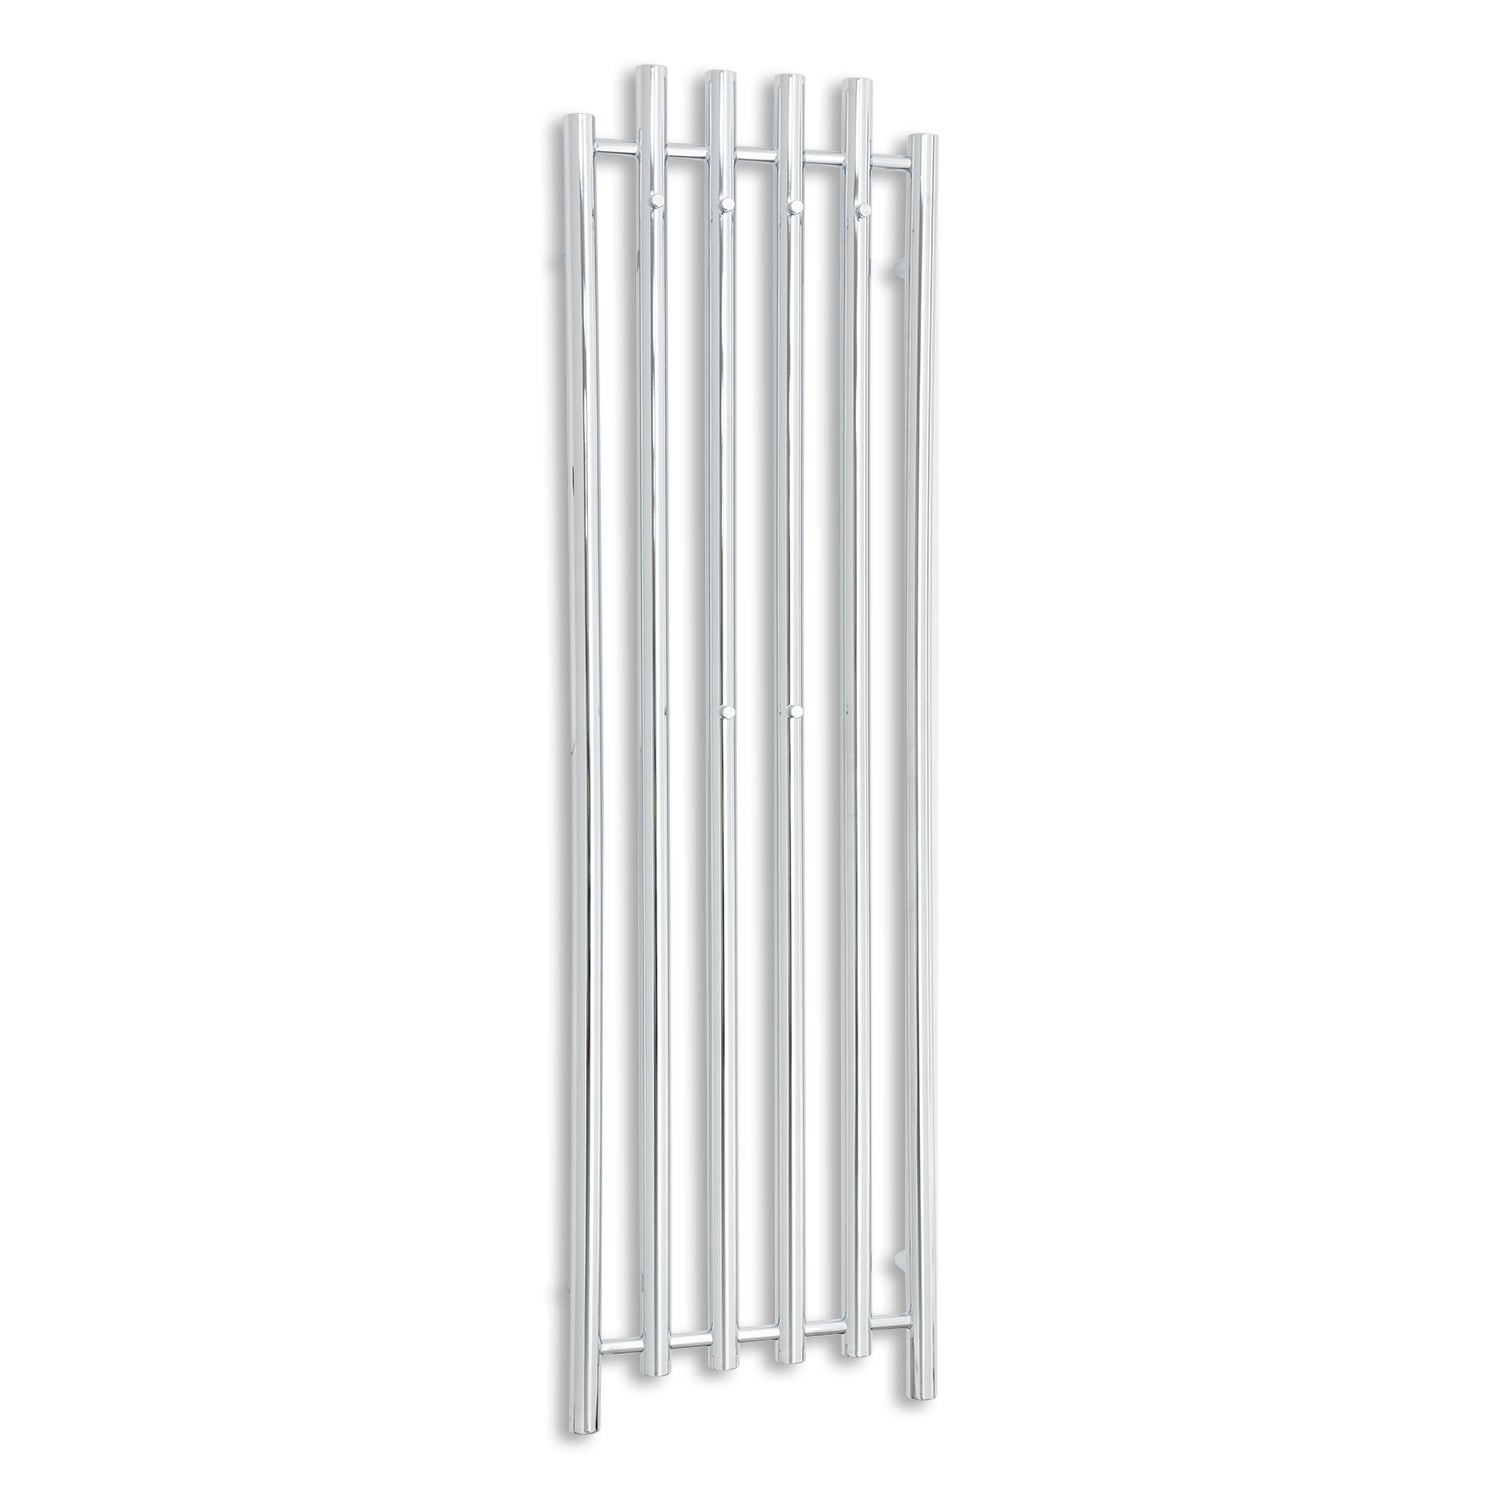 450mm Wide 1600mm High Chrome Towel Rail Radiator